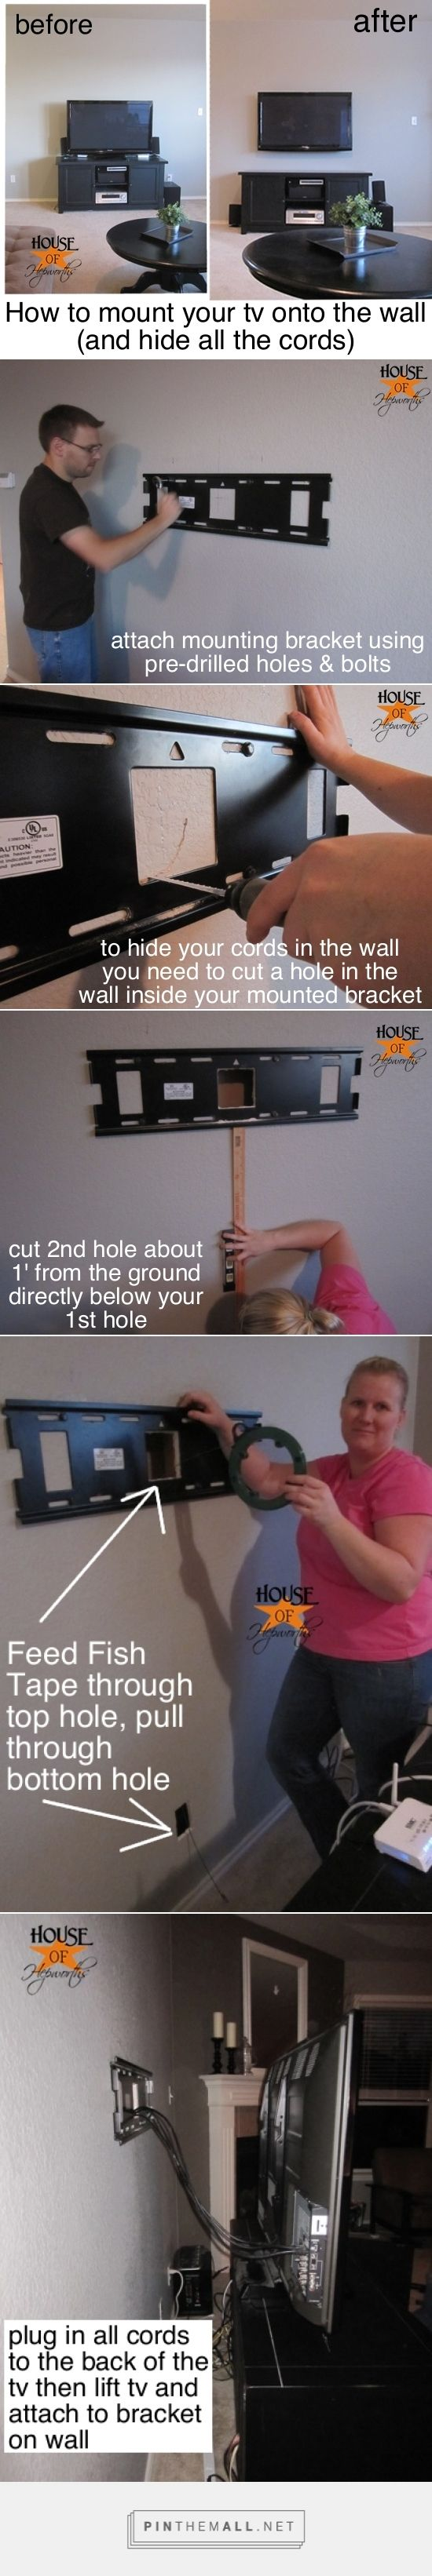 Mounting your tv to the wall and hiding all the cords.                                                                                                                                                     More